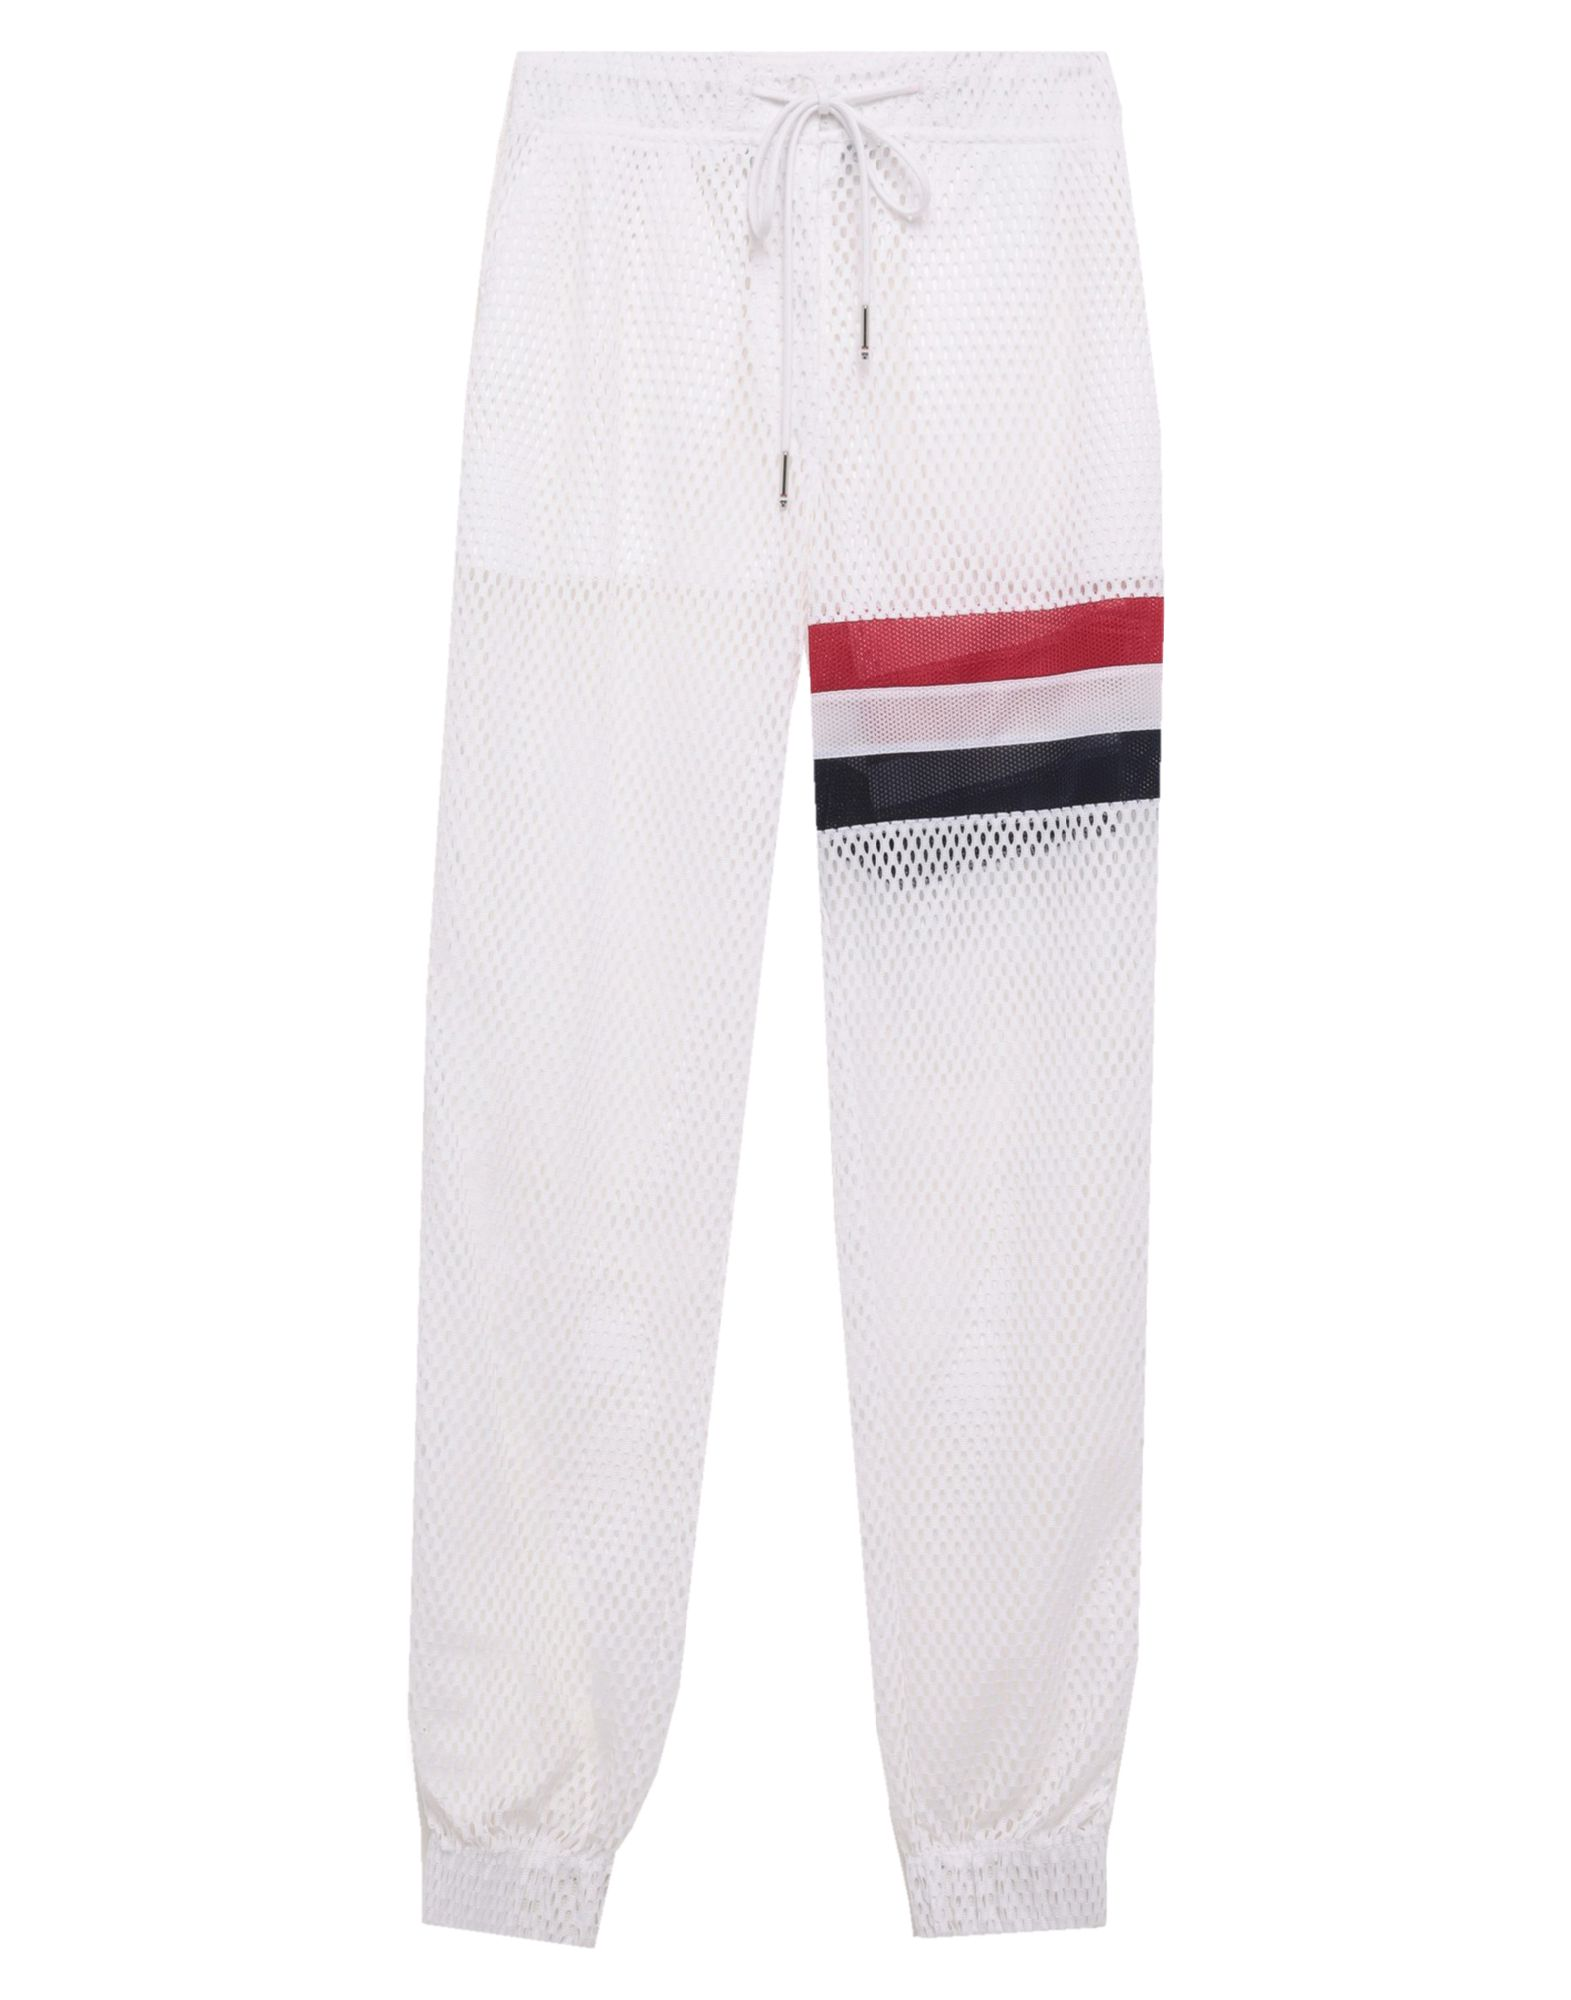 THOM BROWNE Casual pants. plain weave, logo, solid color, mid rise, comfort fit, straight leg, drawstring closure, multipockets. 100% Polyamide, Polyethylene